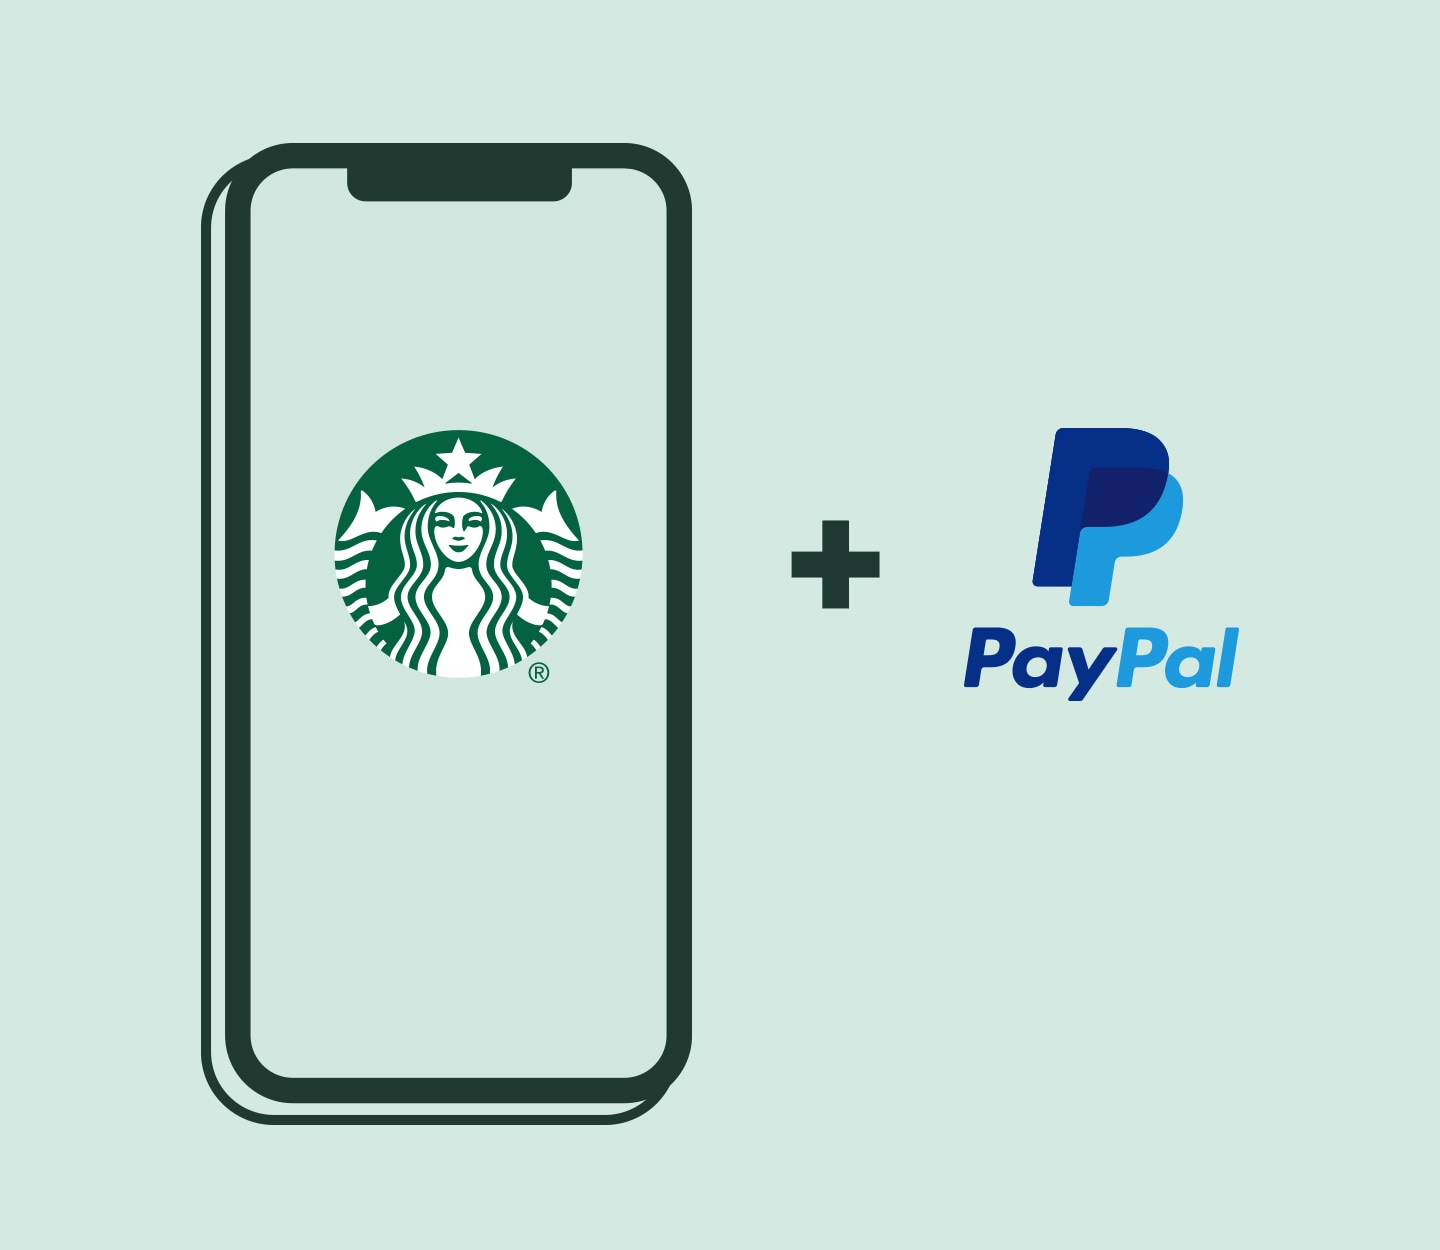 Outlined phone image with Starbucks logo and a plus sign with PayPal logo